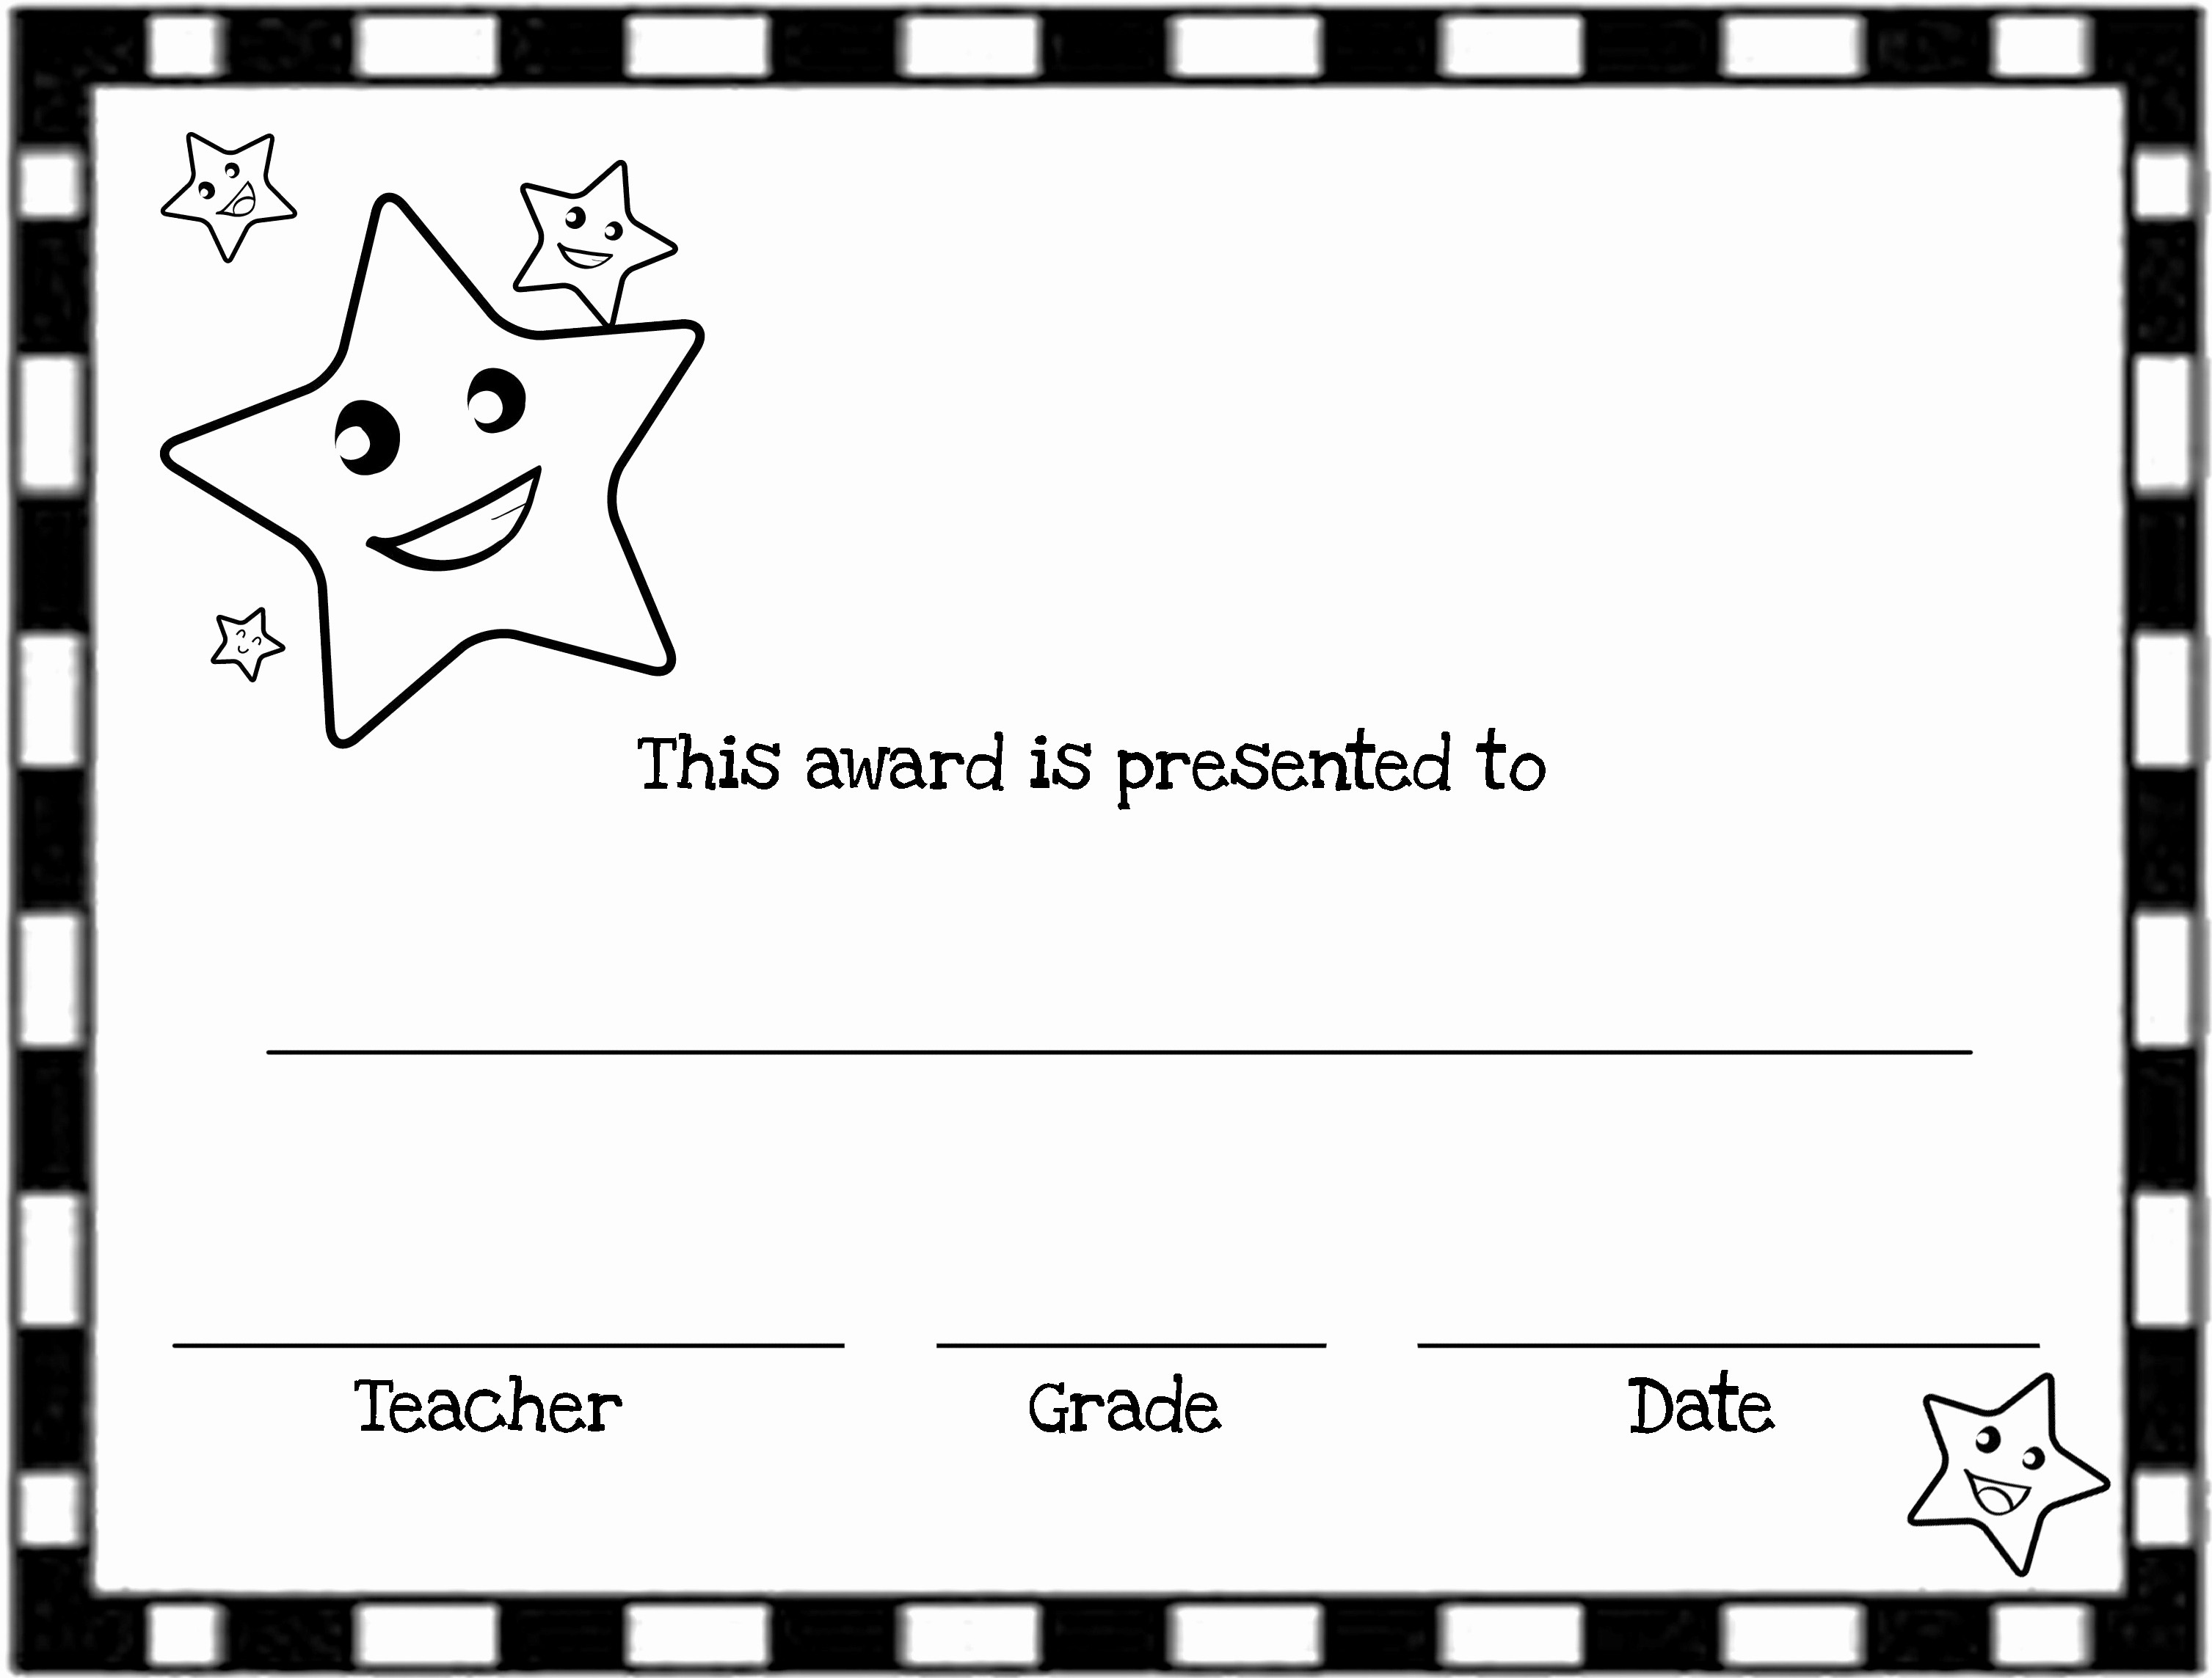 Award Certificates for Elementary Students New Free Printable Award Certificates for Elementary Students